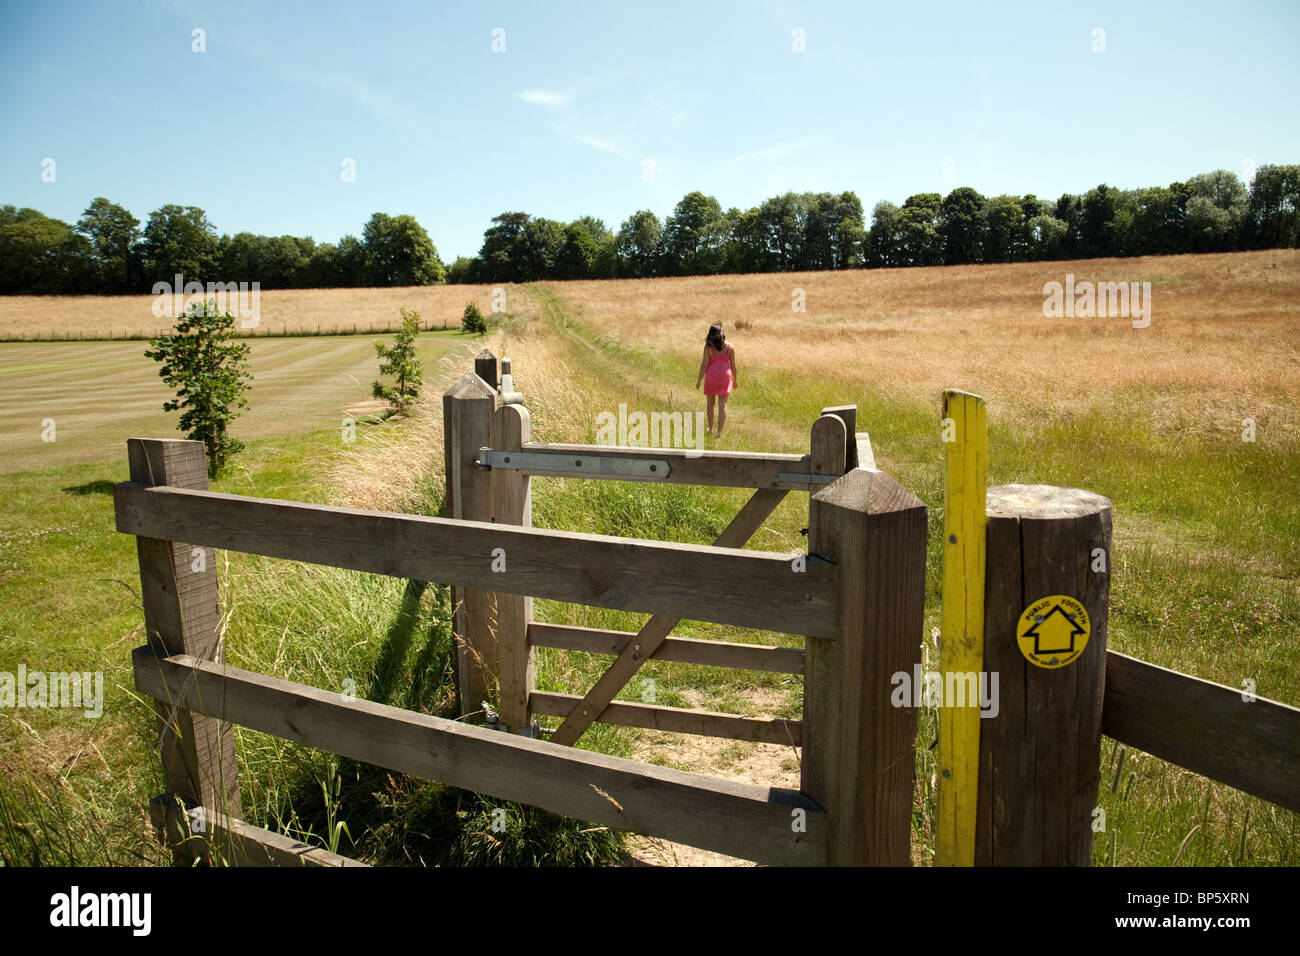 A young woman walking in the british countryside, Lyminge village near Folkestone, Kent, UK - Stock Image